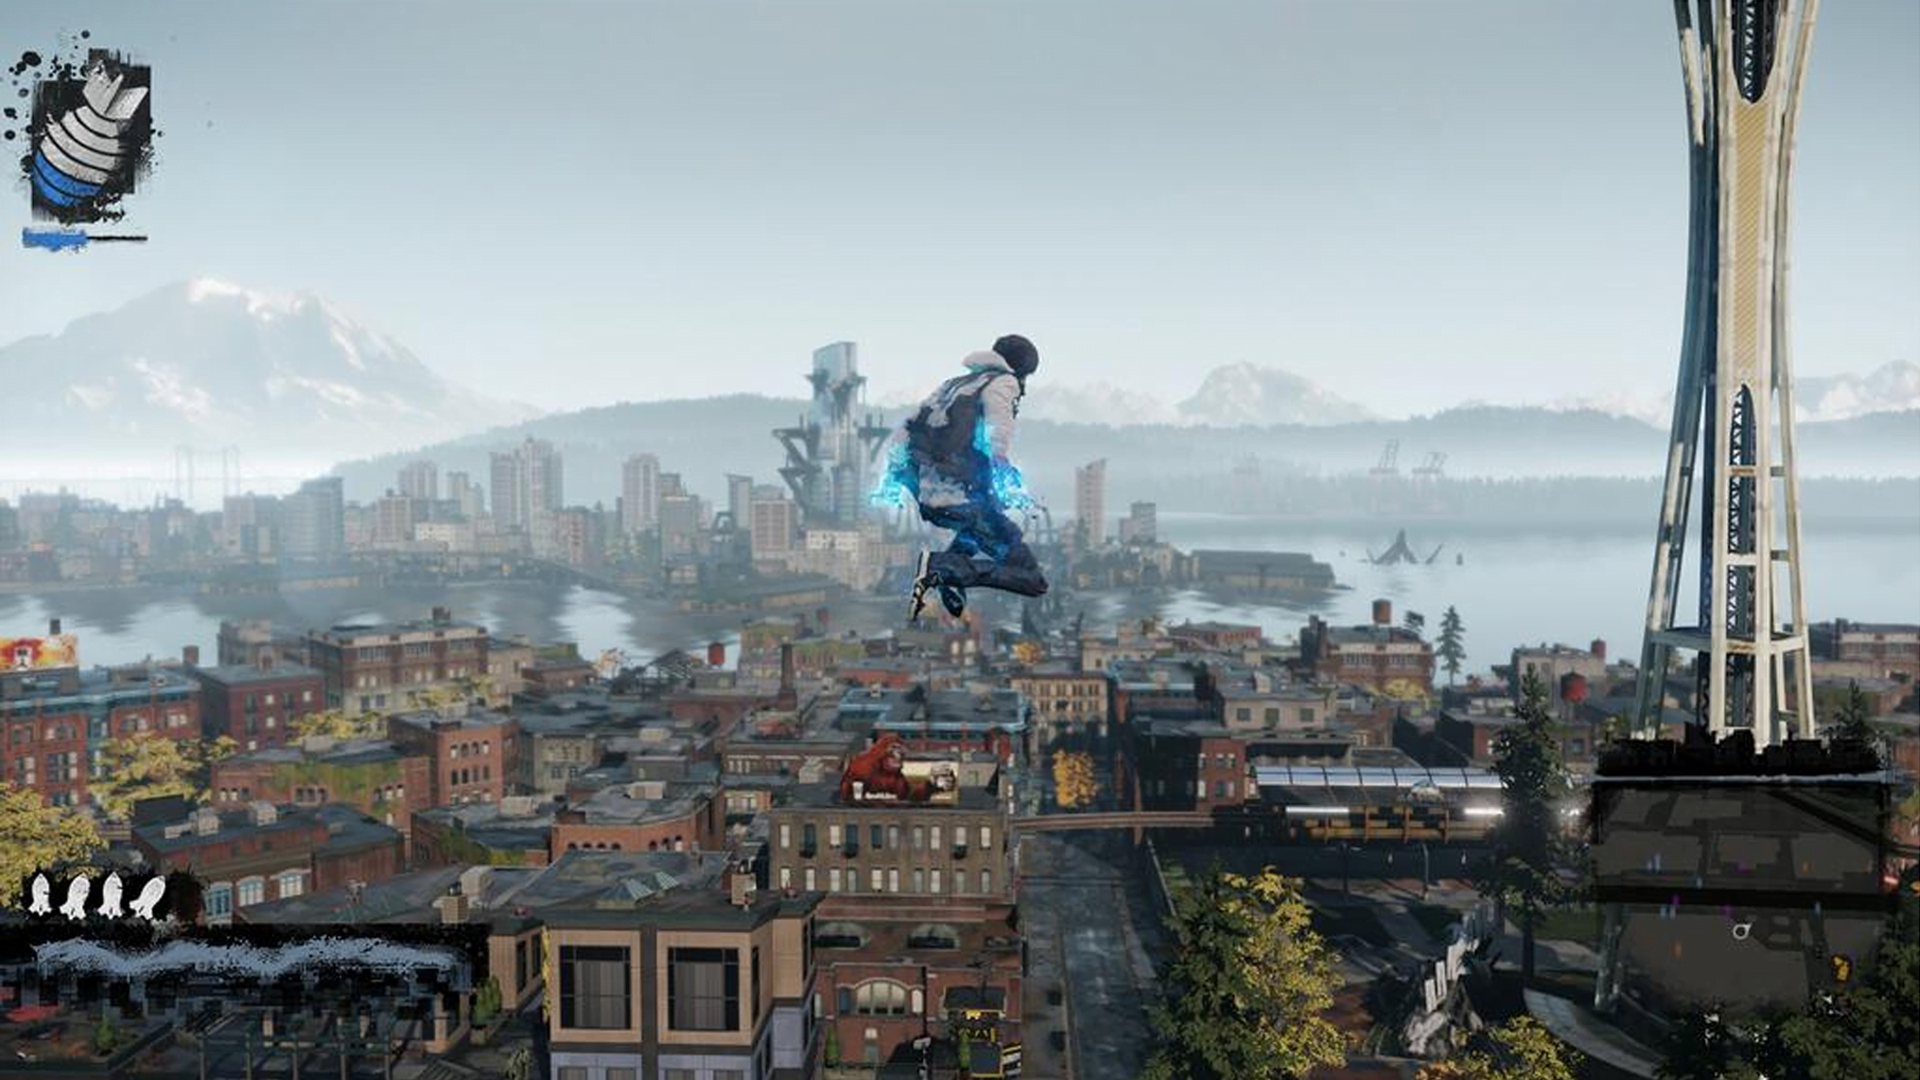 InFamous Second Son Review | GIZORAMA on infamous blast shard map, infamous second son queen anne map, infamous second son seattle flag, infamous second son district map, minecraft seattle map, infamous second son city map, infamous 2 map, seattle science center map, infamous second son game map,